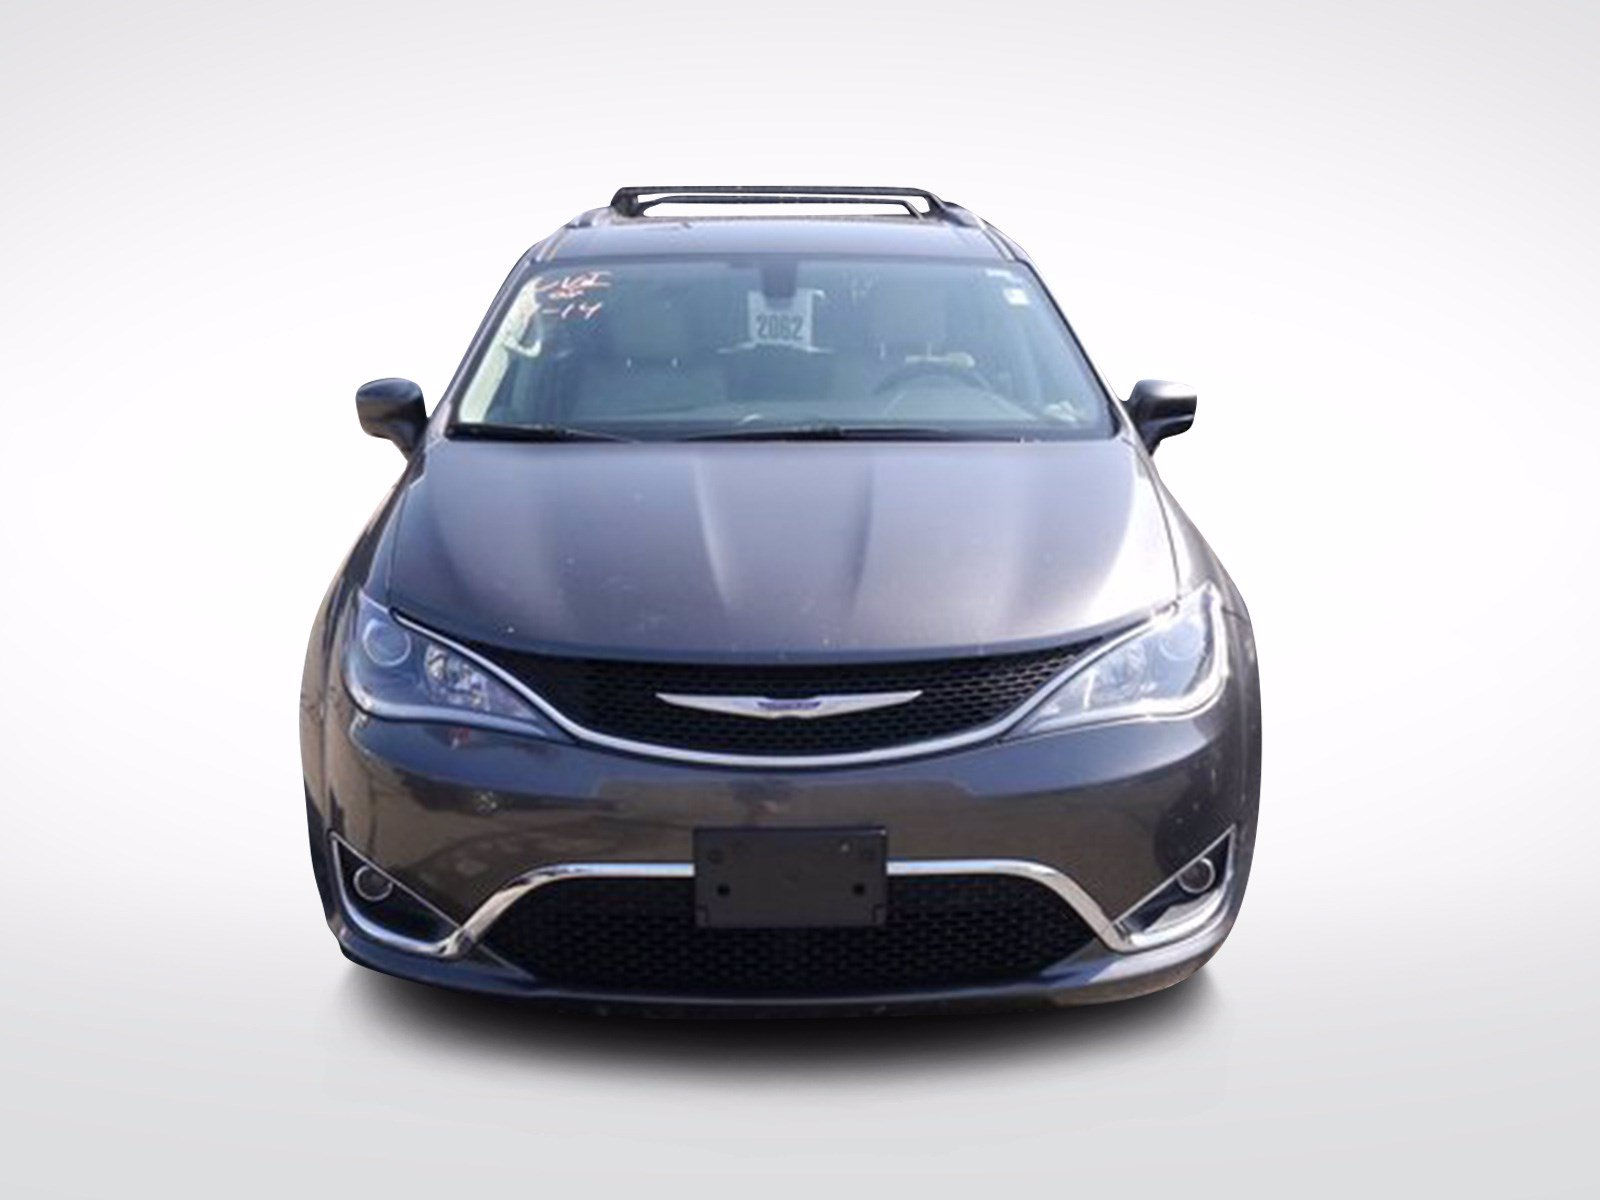 Used 2019 Chrysler Pacifica Touring L Plus with VIN 2C4RC1EG9KR525674 for sale in Baxter, Minnesota